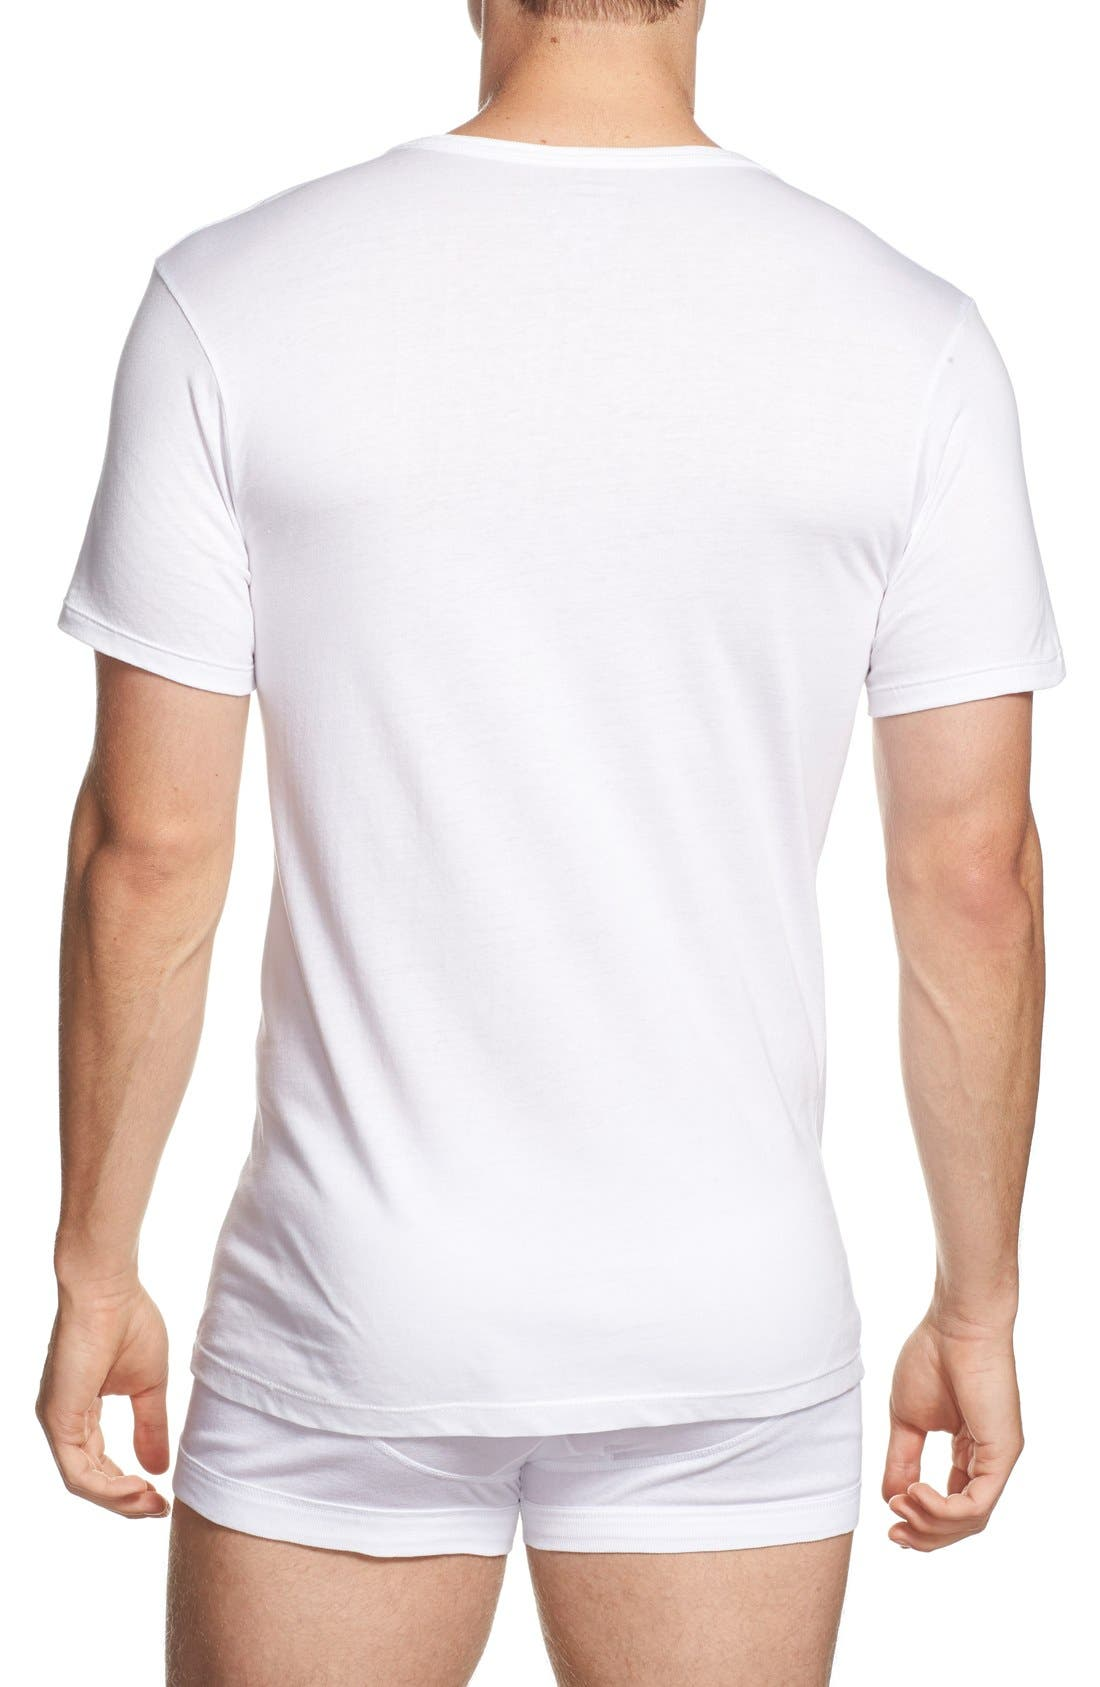 CALVIN KLEIN, Slim Fit 3-Pack Cotton T-Shirt, Alternate thumbnail 2, color, WHITE